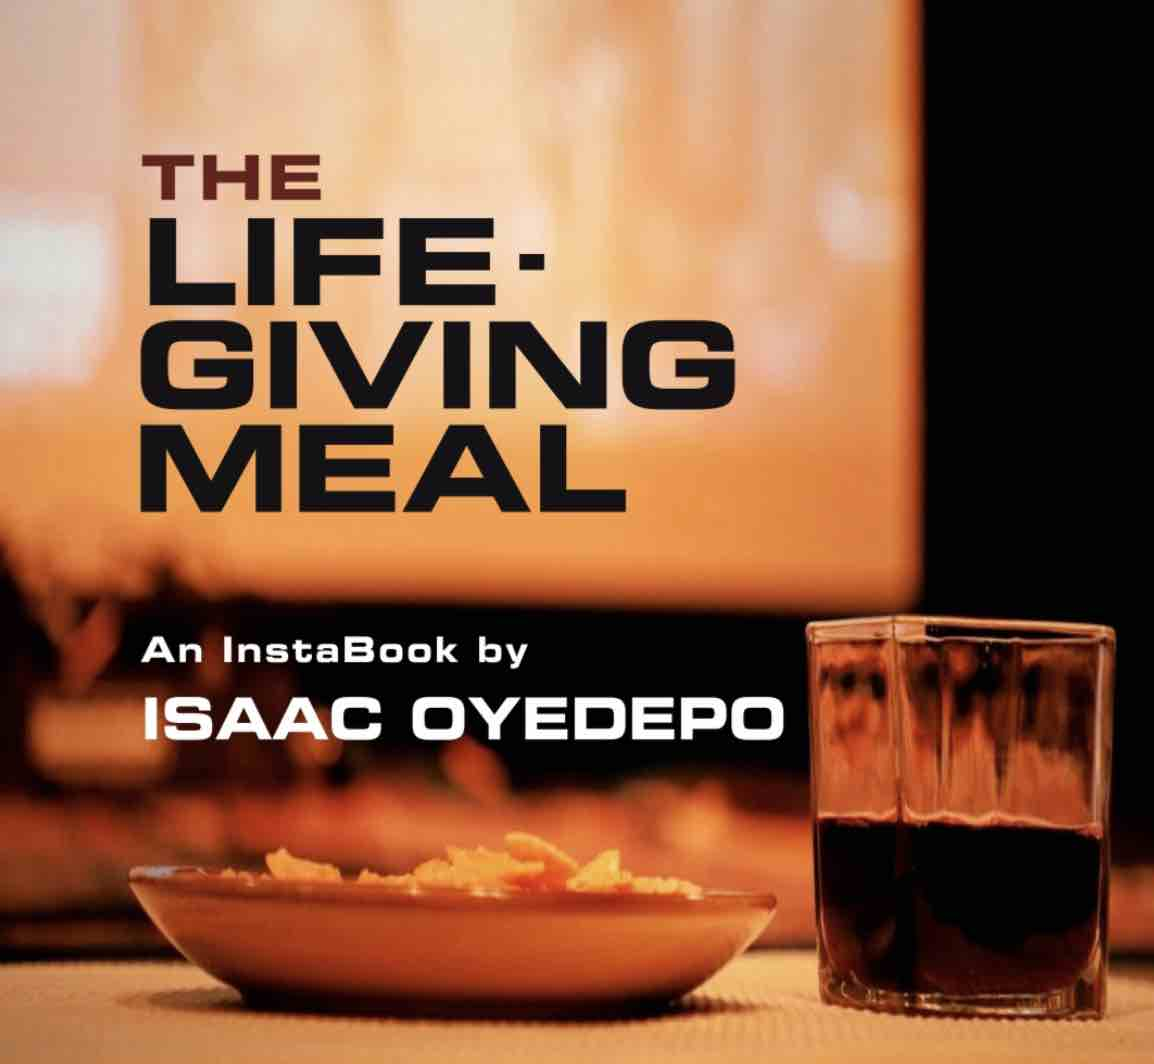 The Life Giving Meal